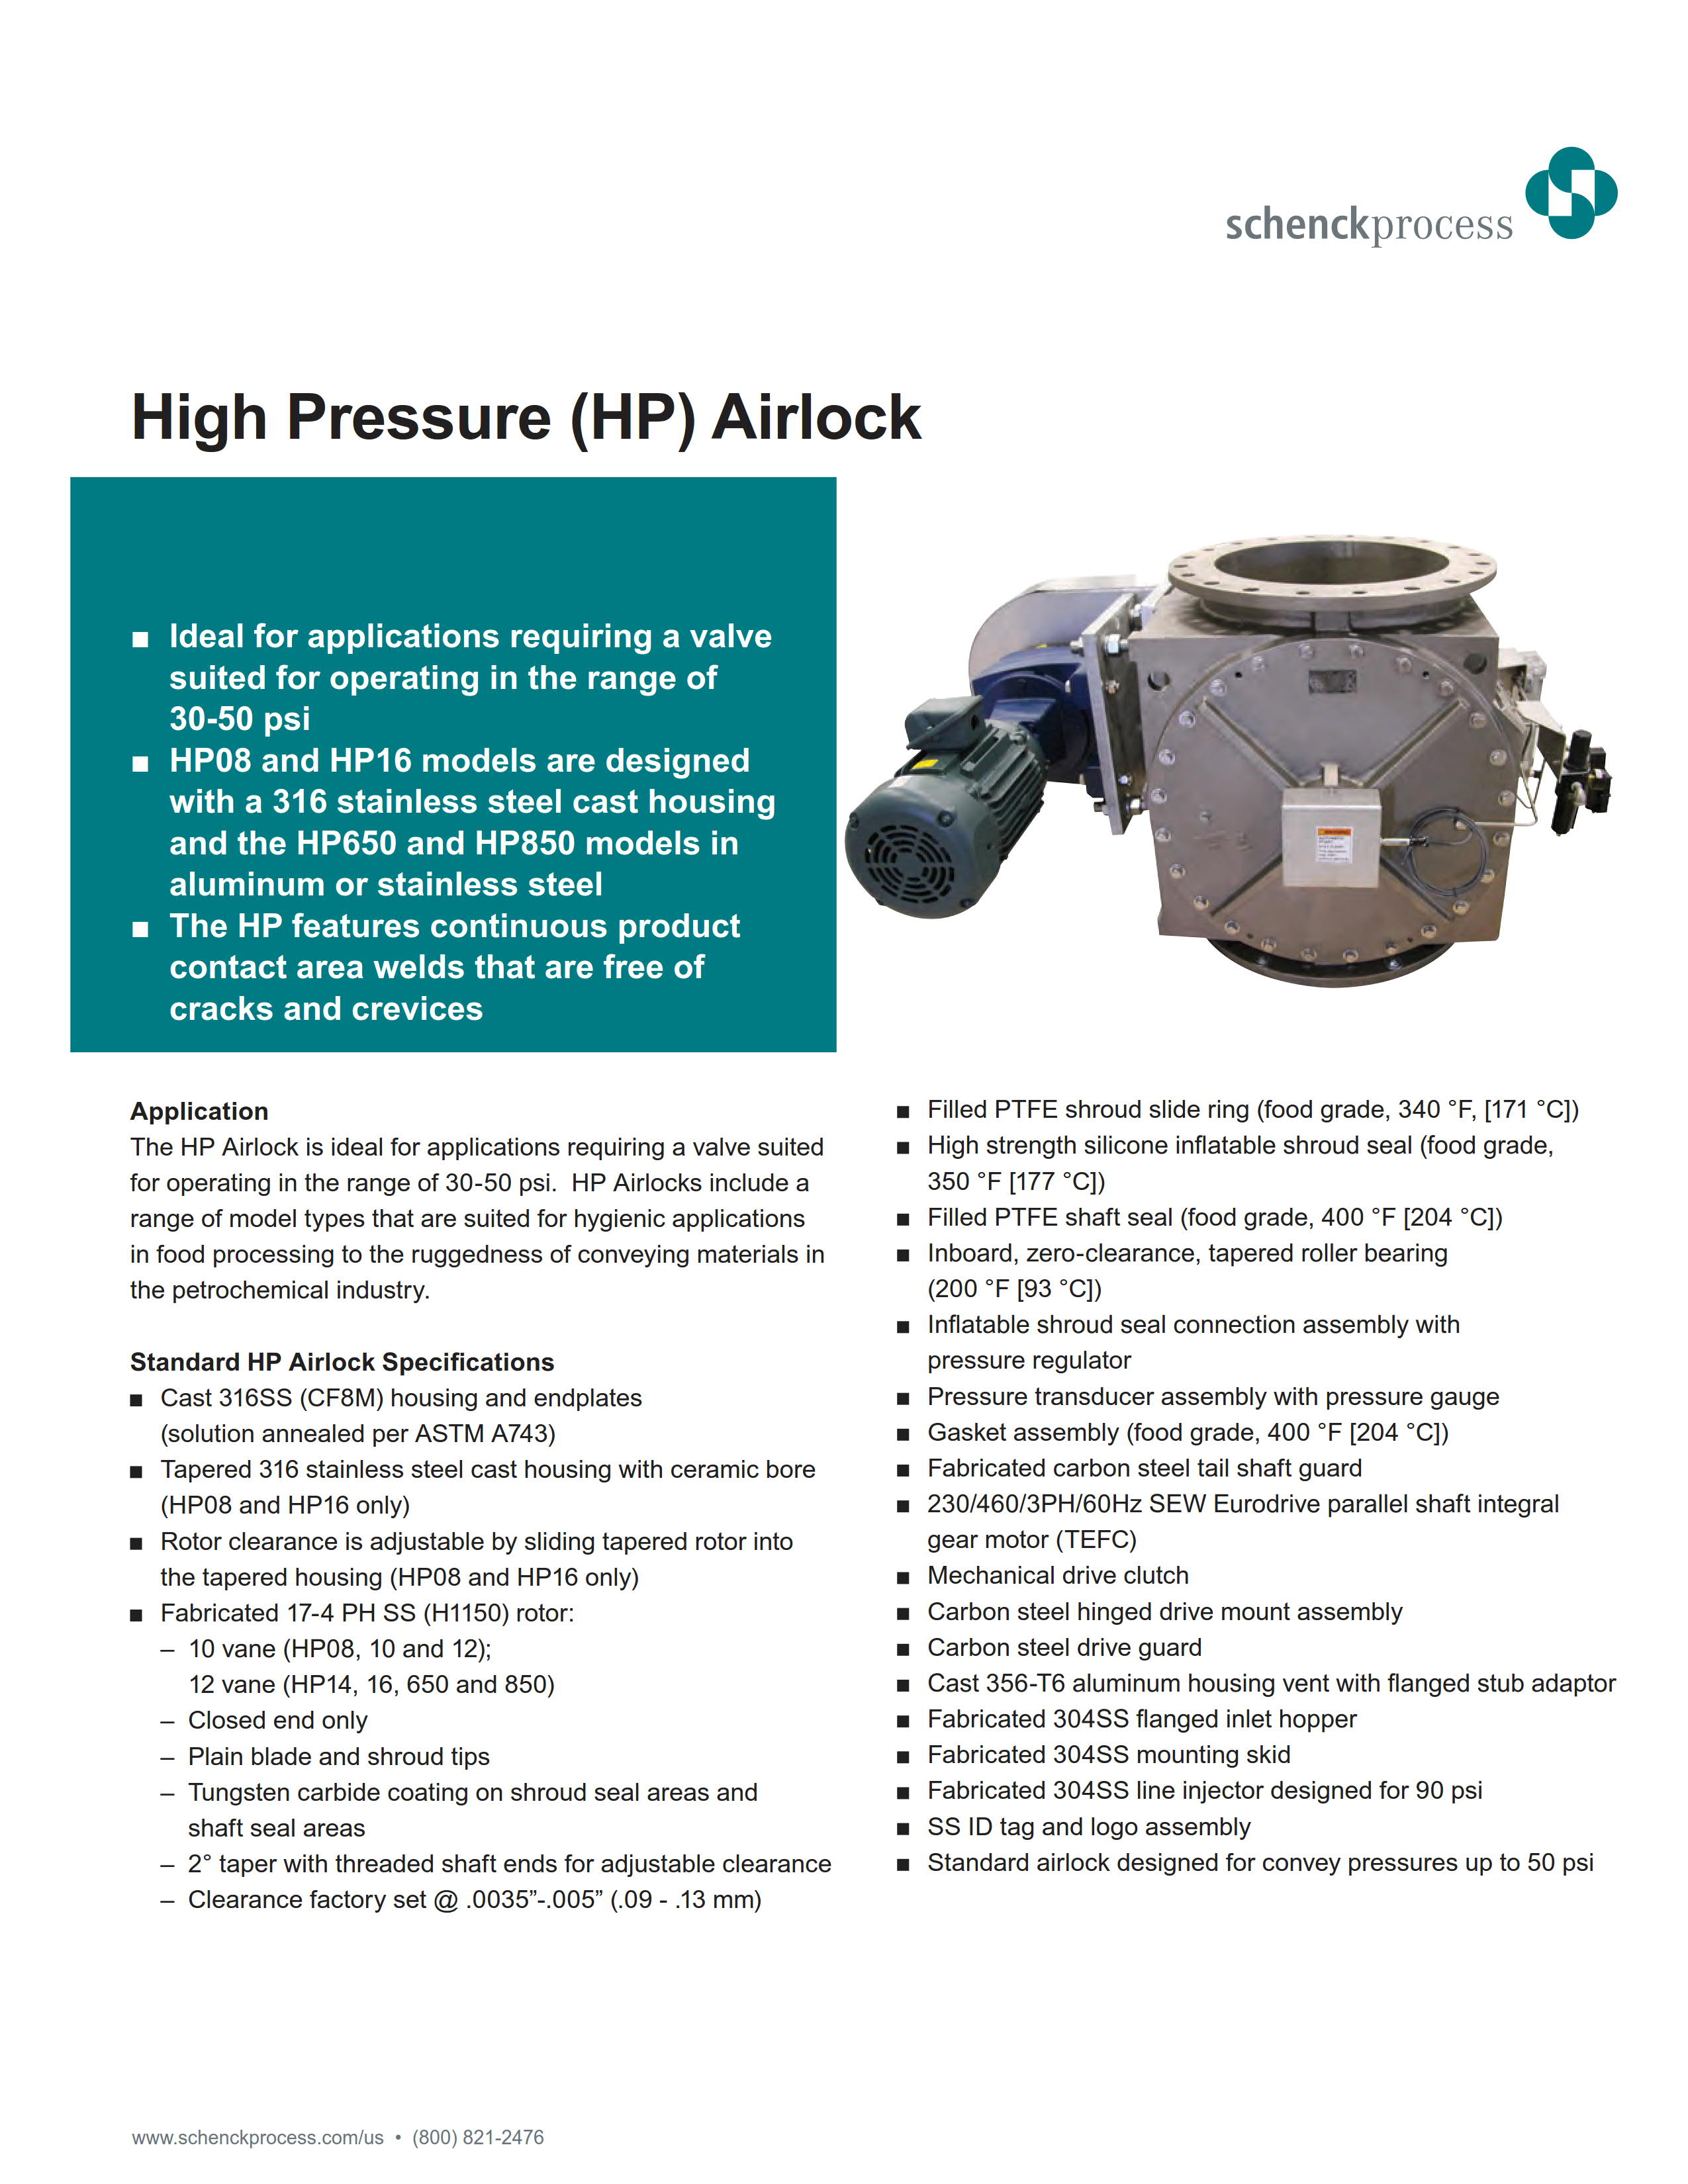 High Pressure (HP) Airlock